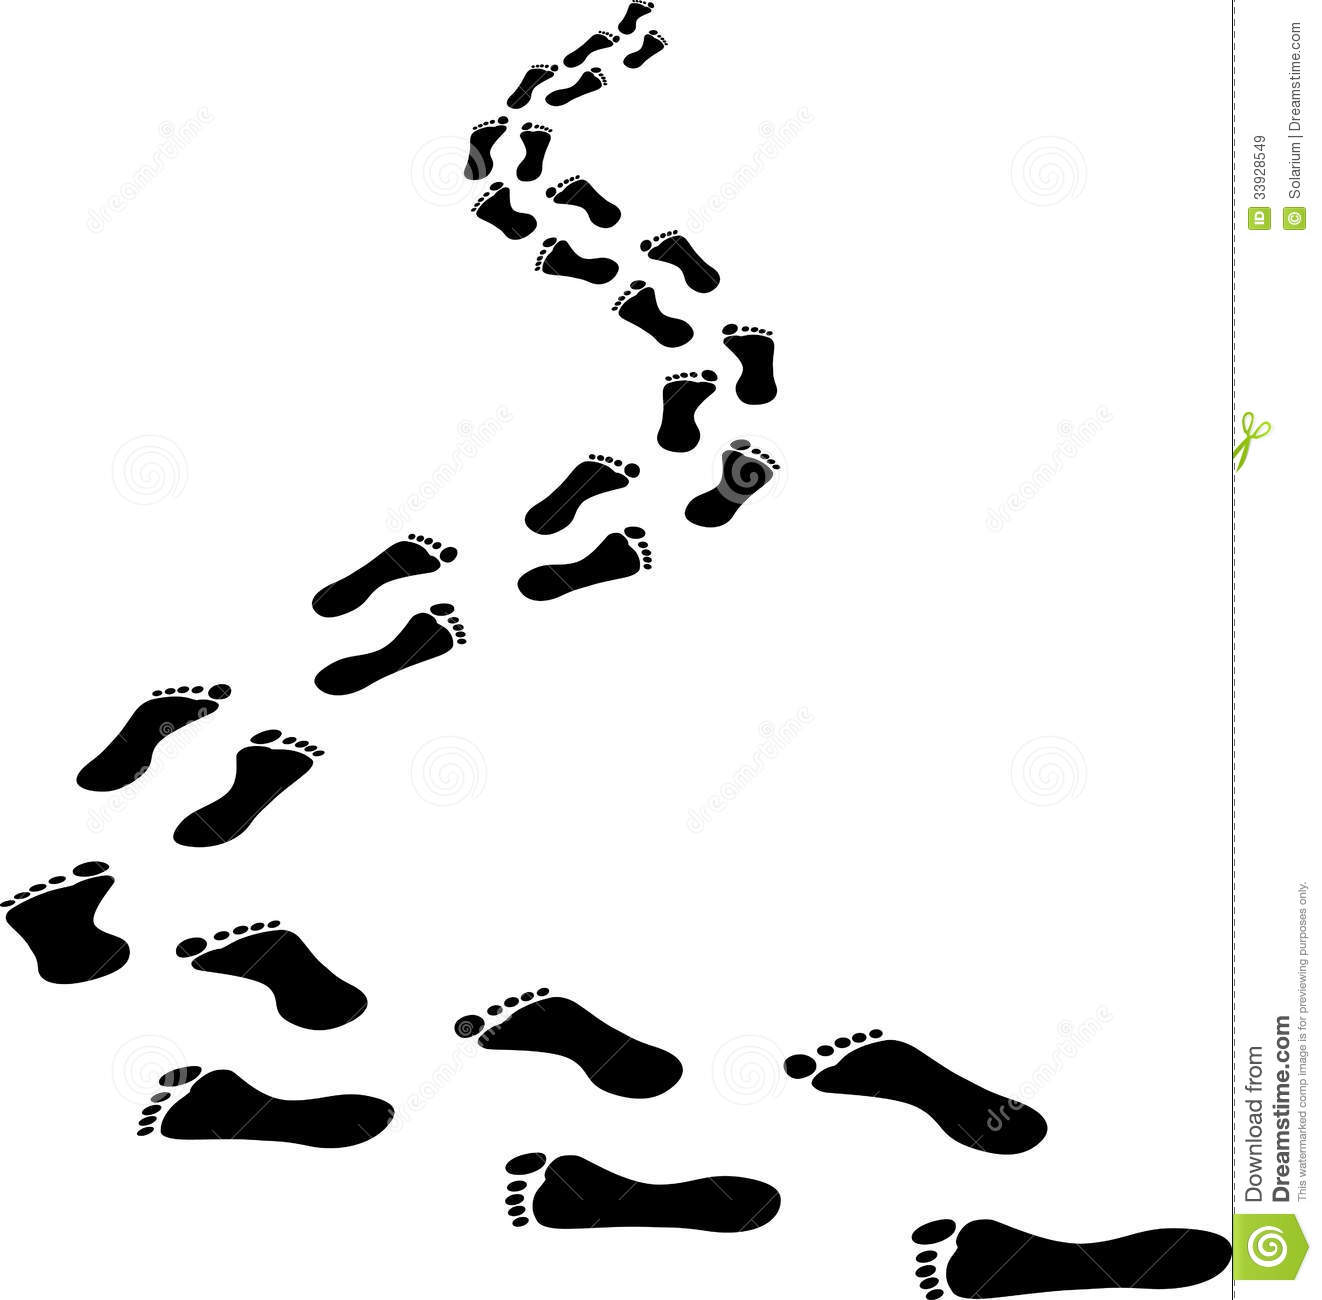 Clipart footprints walking image black and white library Walking Footprints Cliparts | Free download best Walking Footprints ... image black and white library